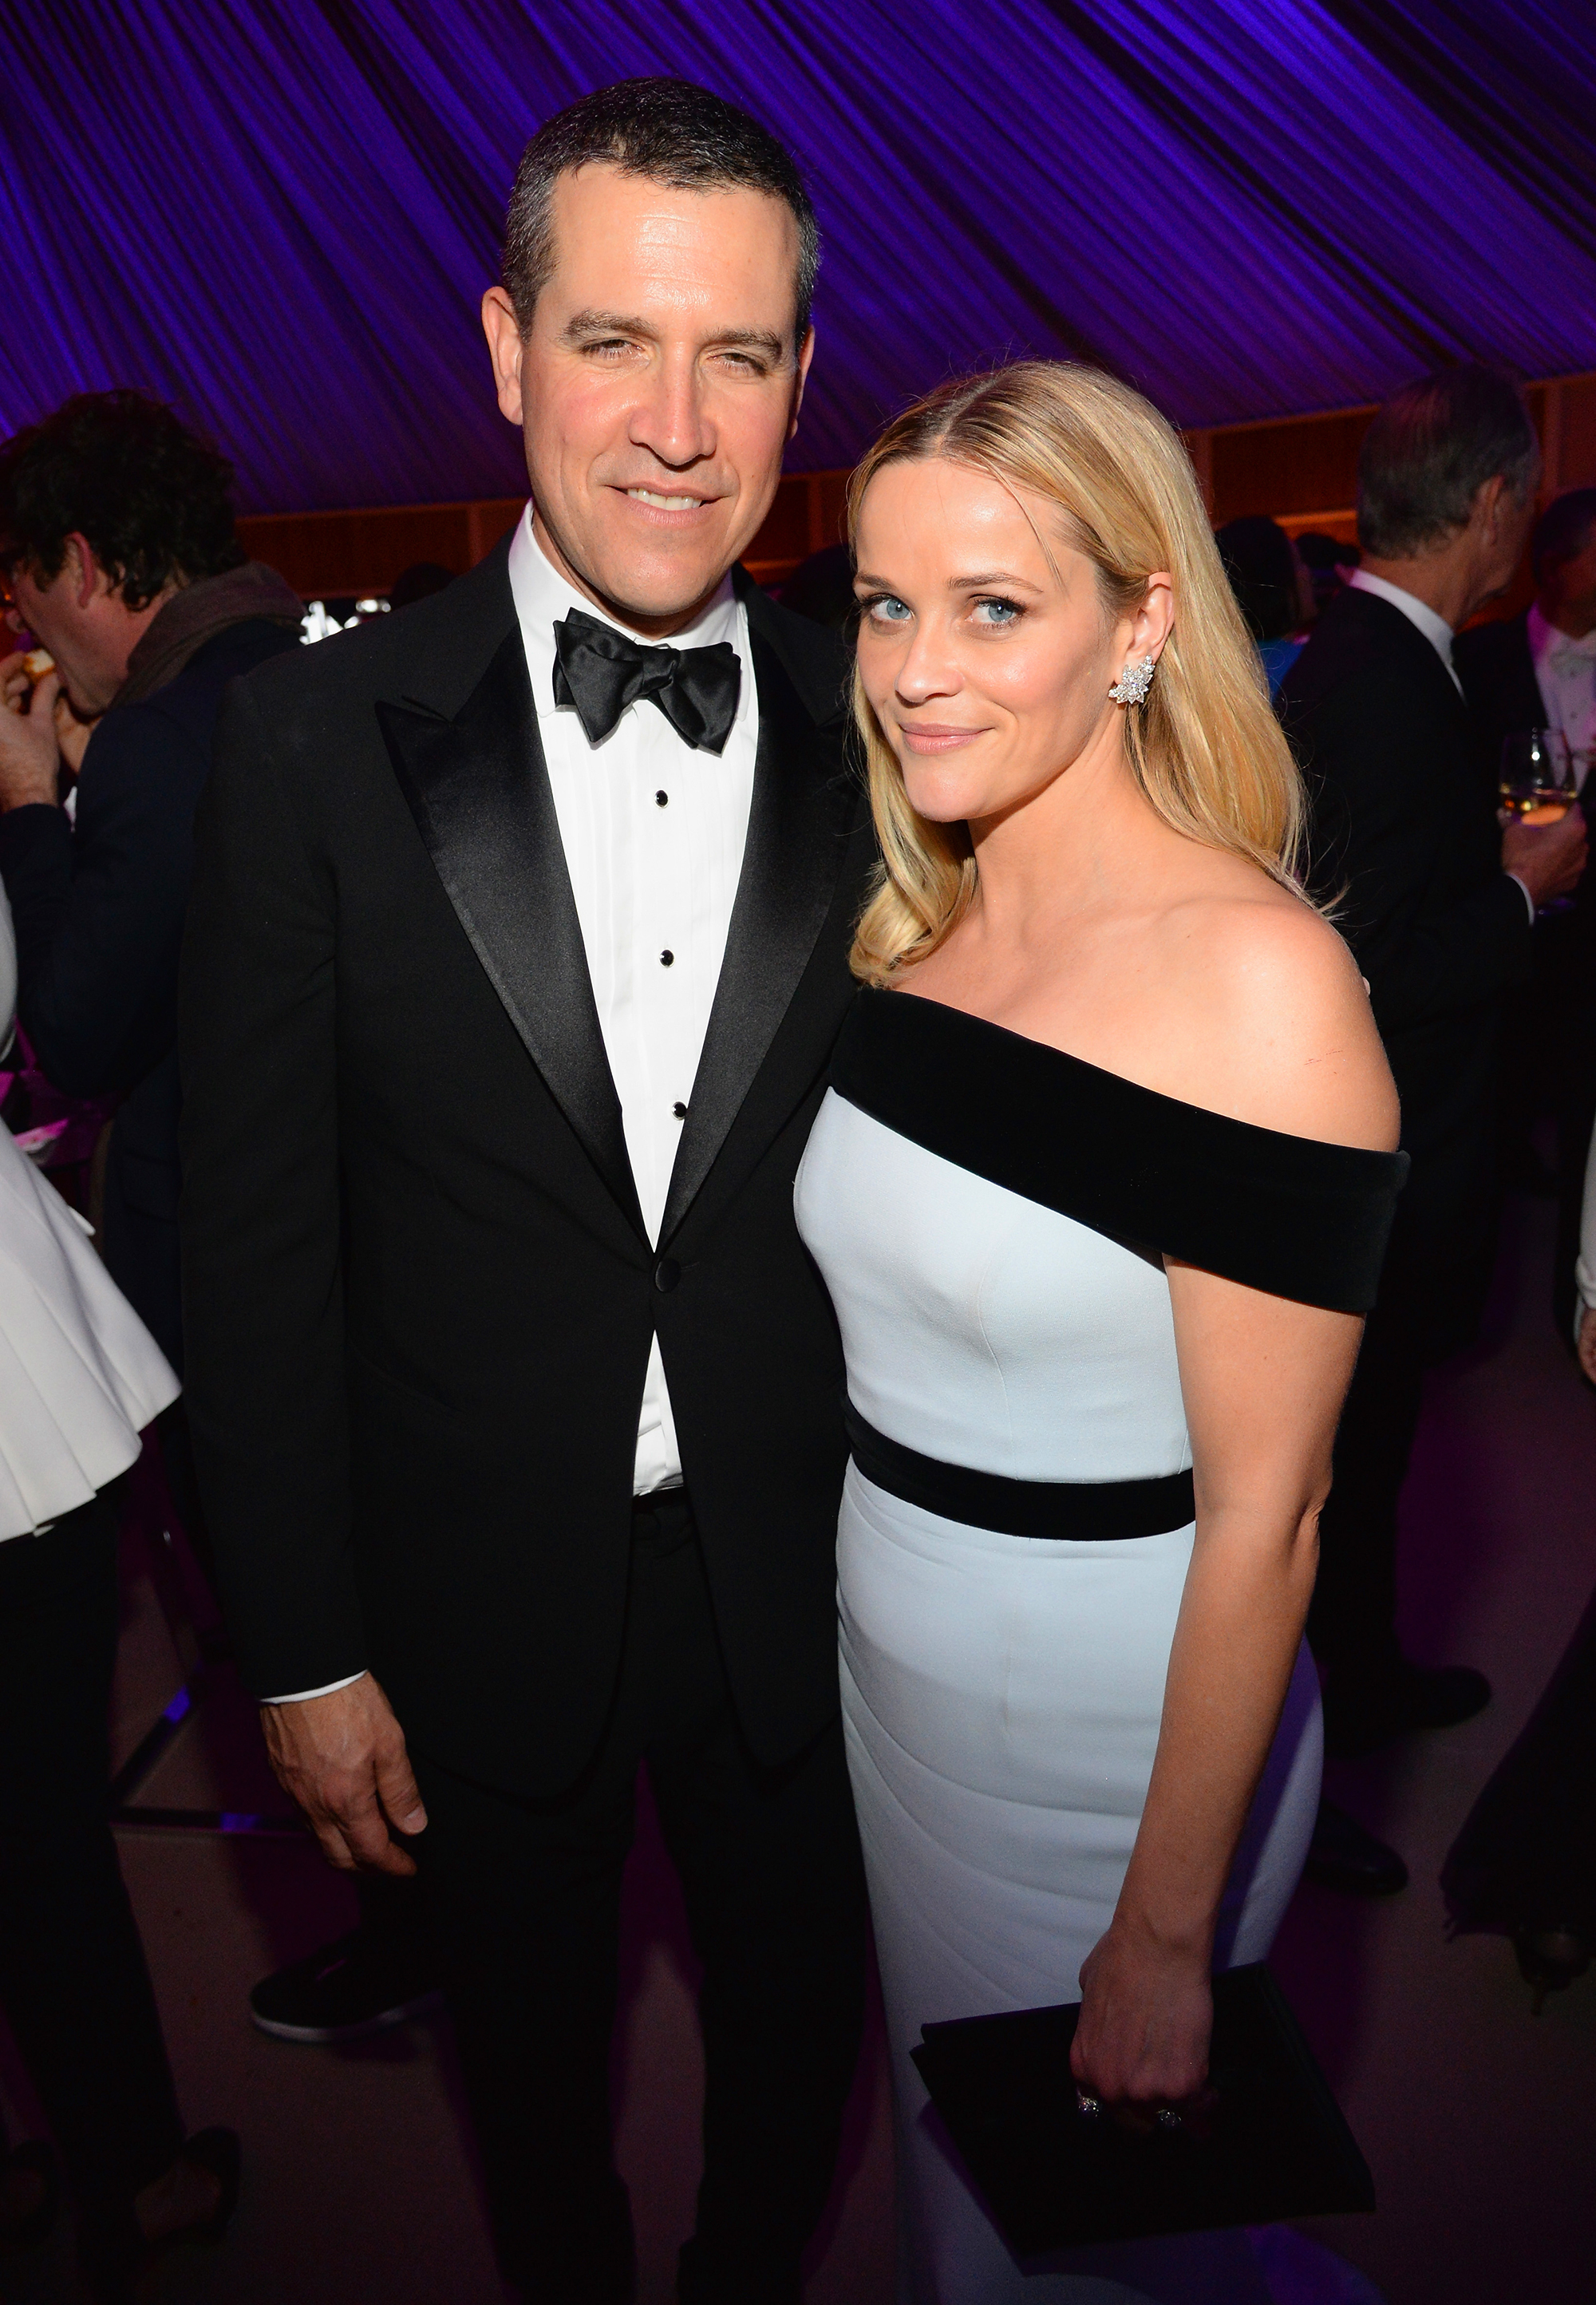 """hot rebound romances - Shortly after Witherspoon's mid-winter split from Jake Gyllenhaal , she and Hollywood agent Toth got together, debuting their romance in late March. The hot and heavy pair """"don't want to spend any time apart,"""" a source told Us in May."""